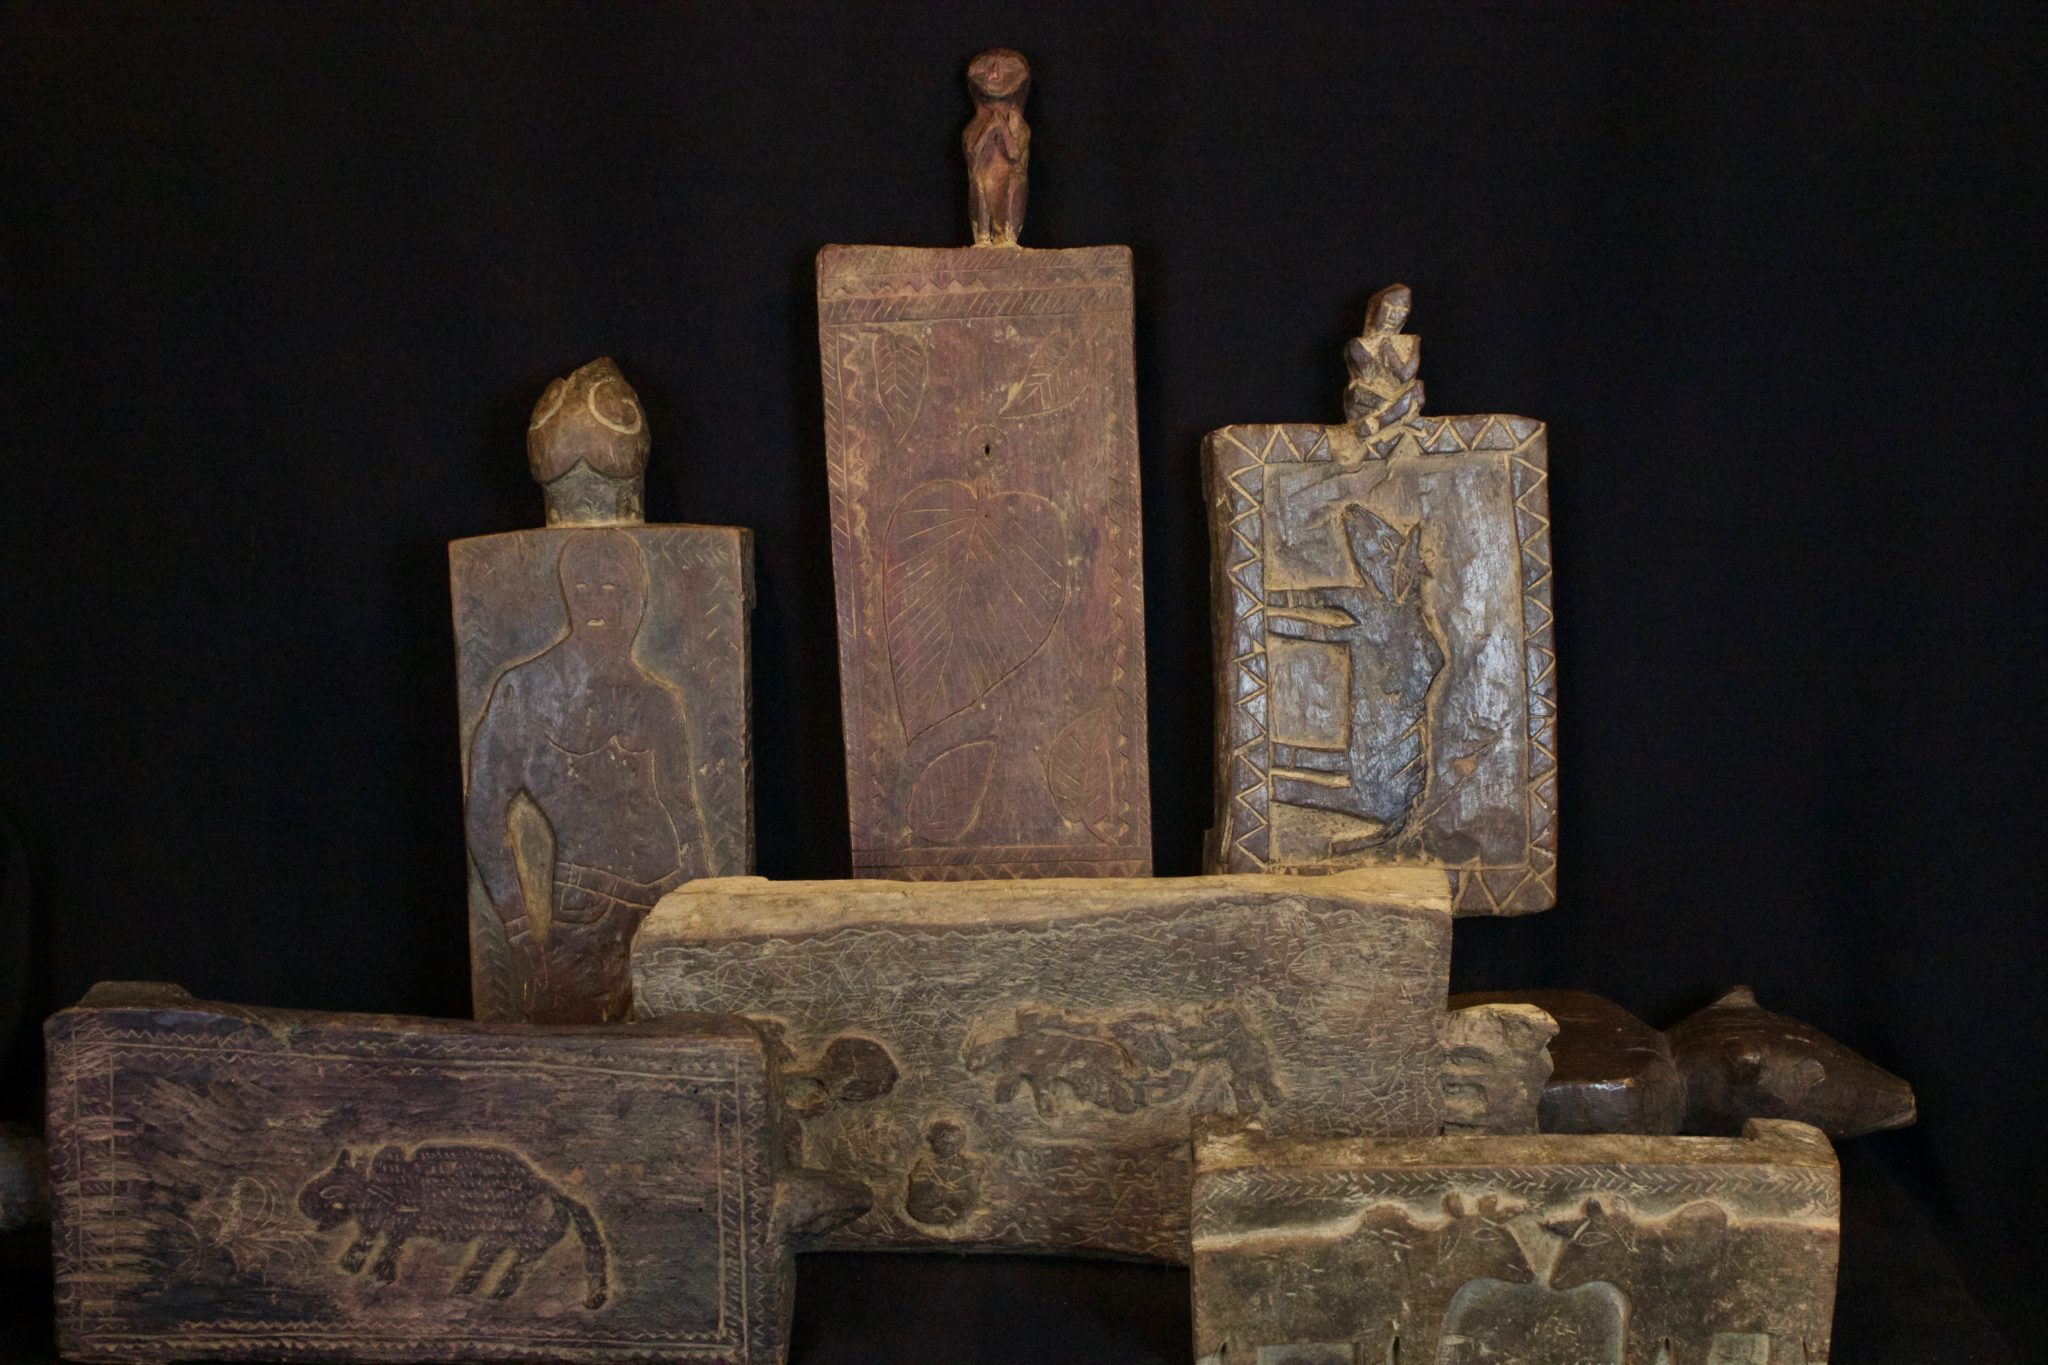 """Hand Carved Wooden Ceremonial Shaman Stools, from the late 19th to mid 20th century, Wood, Used for meditation and for ritual ceremonies. 12"""" to 14"""", $185. to $320."""